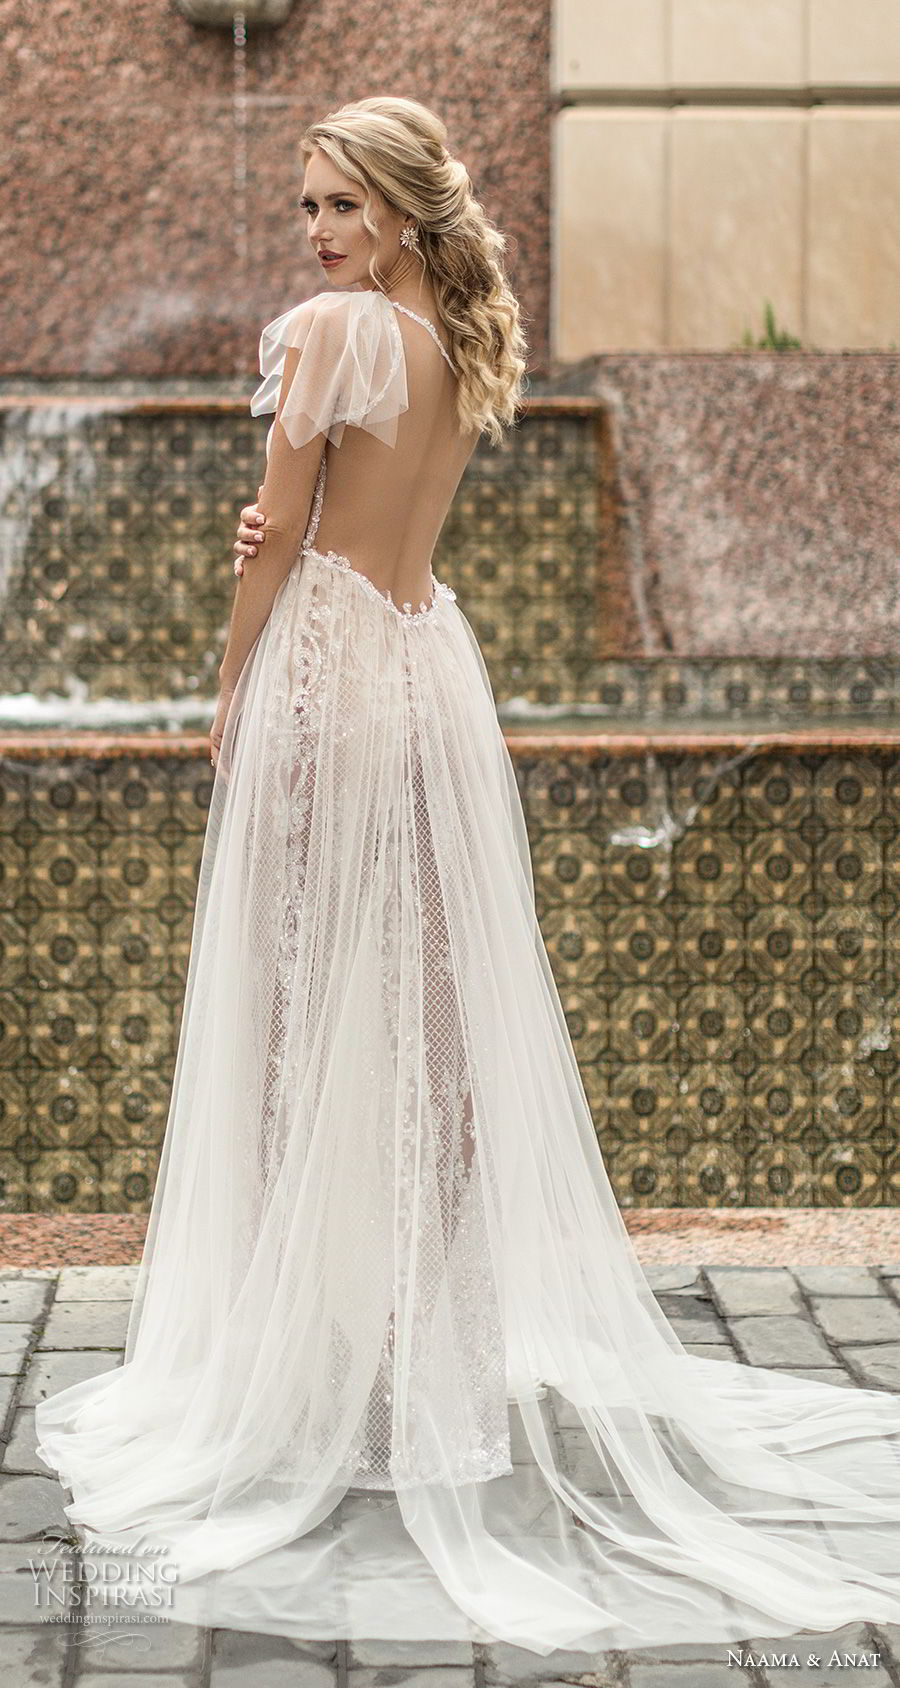 naama anat spring 2019 bridal one shoulder slope neckline full embellishment slit skirt romantic sheath wedding dress a line overskirt sheer back chapel train (3) bv